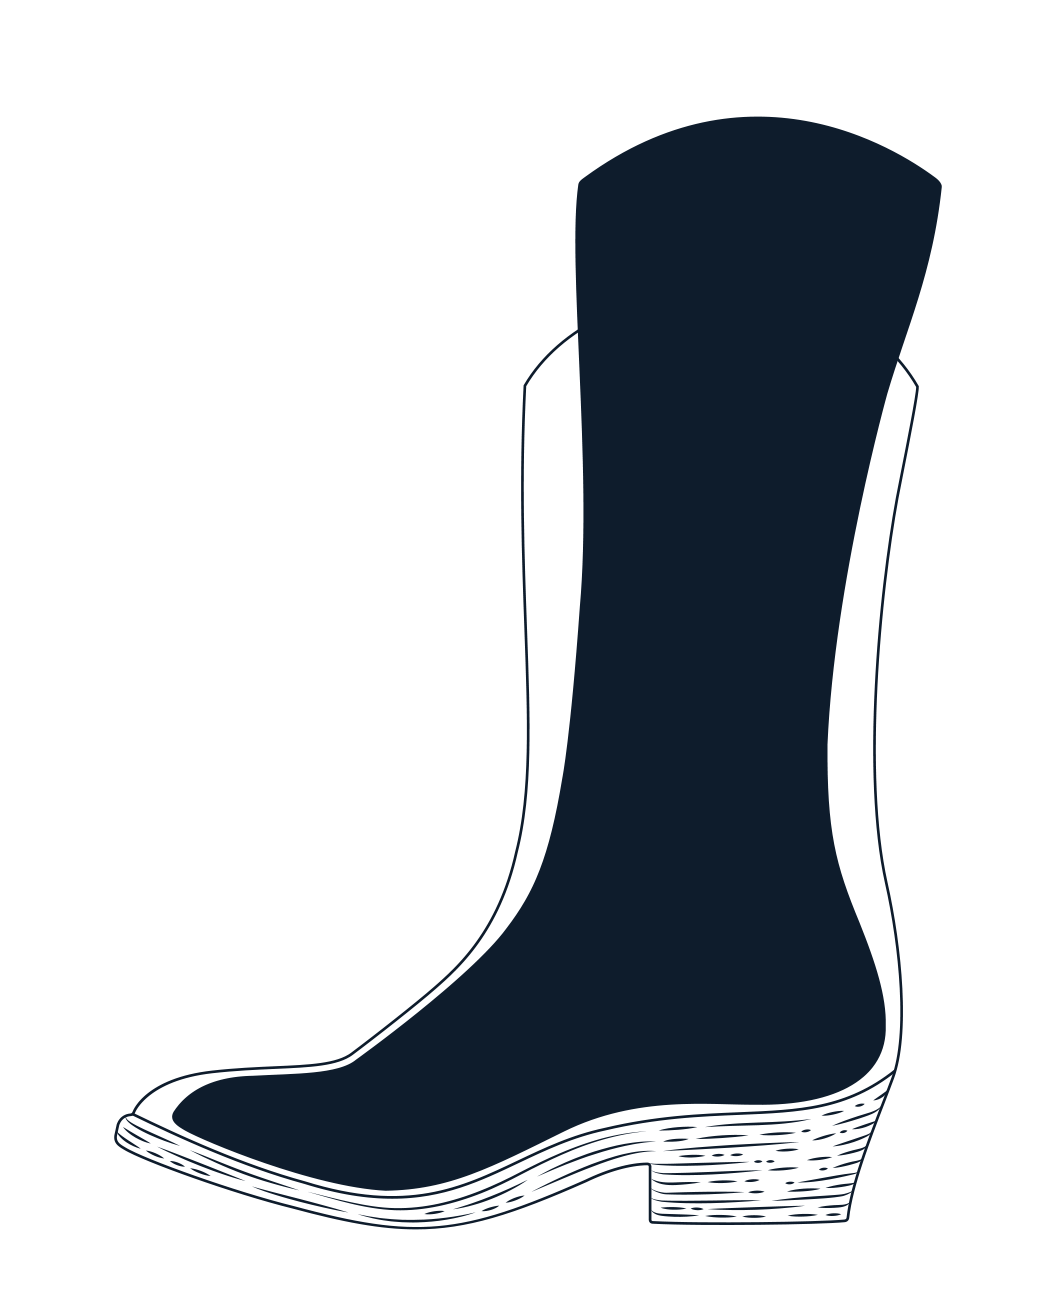 Sock clipart fitting shoe. Carina lucchese since foot